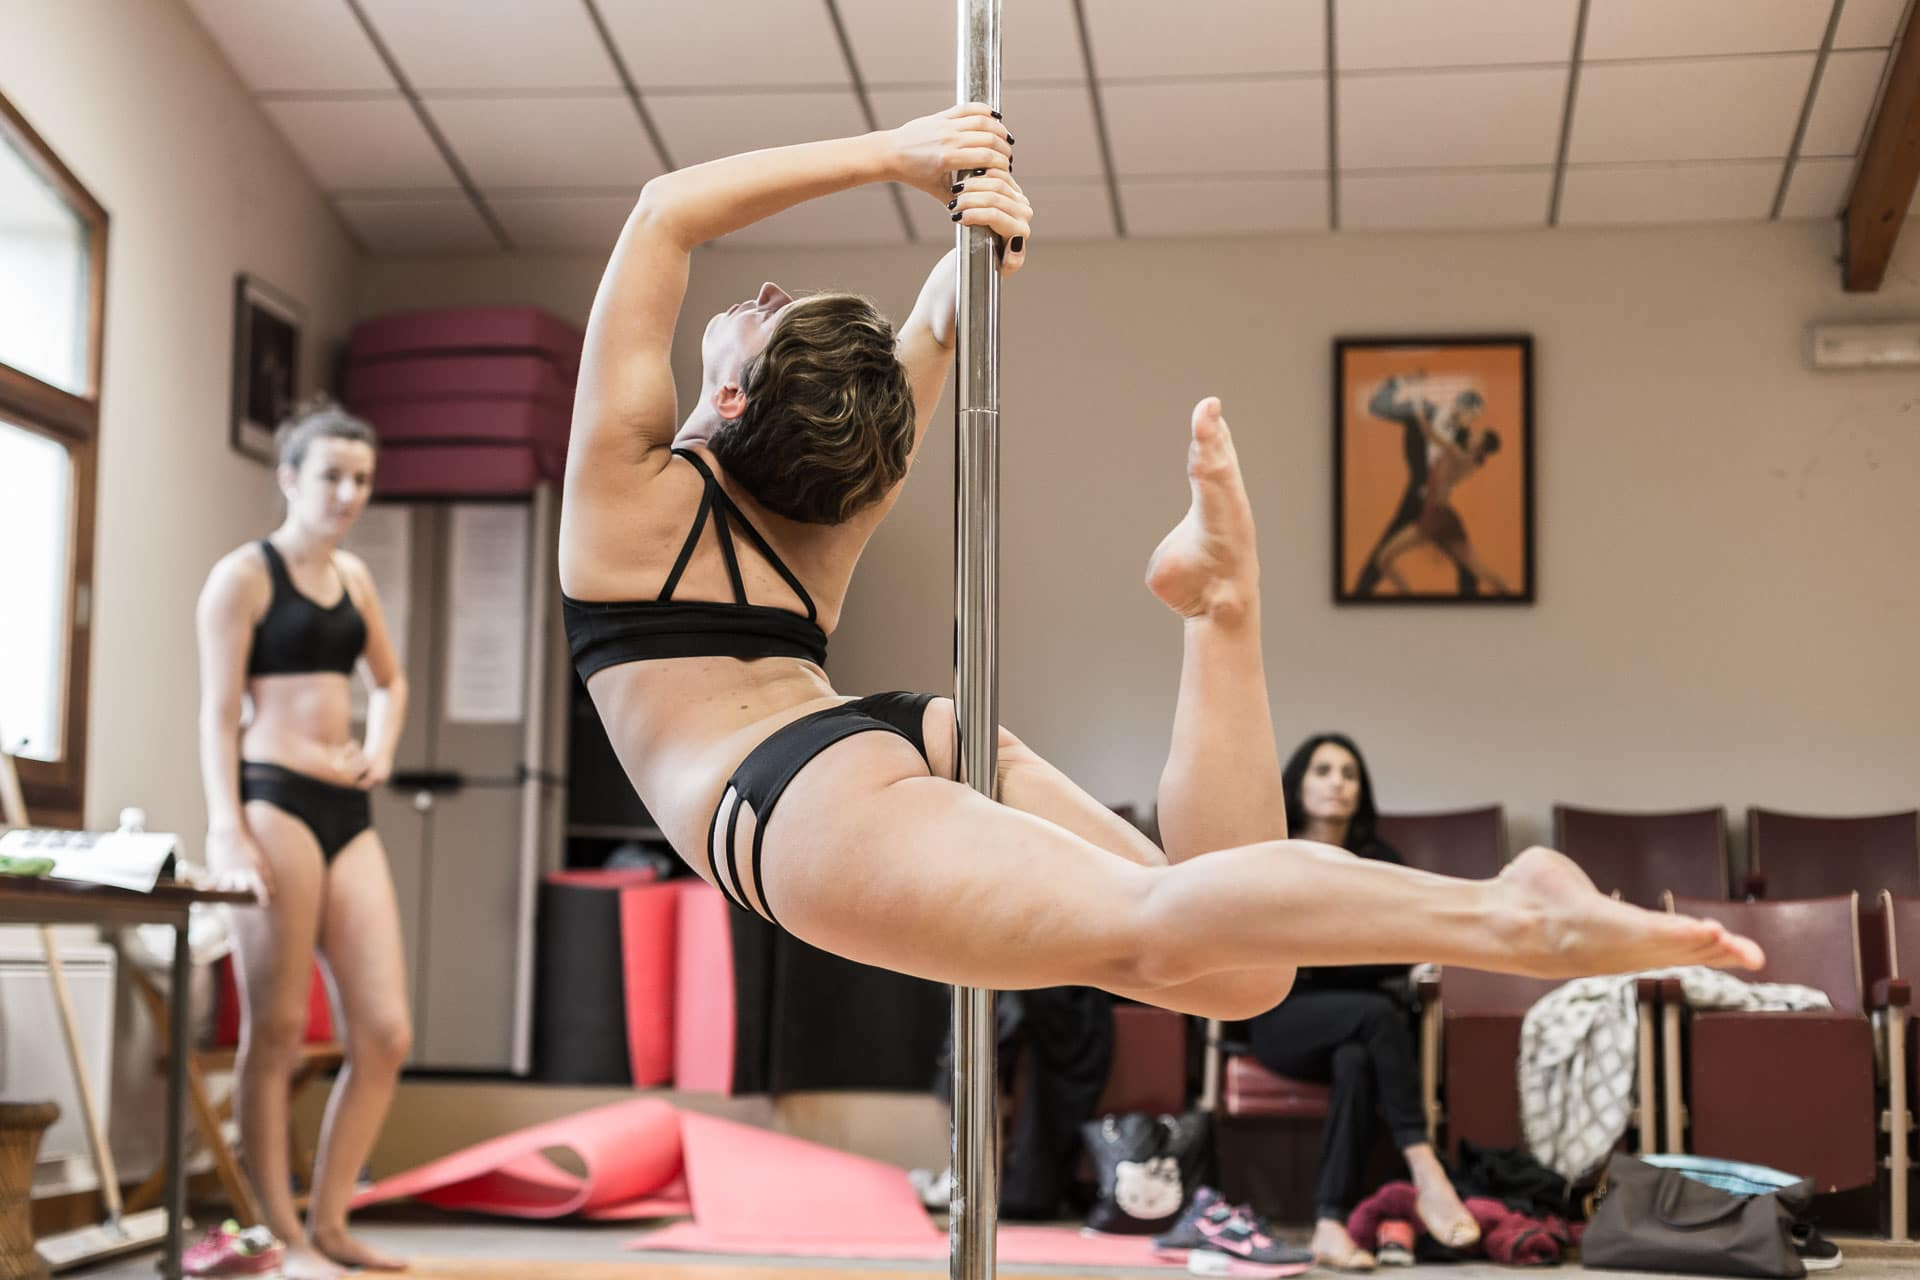 photographe-poitiers-pole-dance.jpg